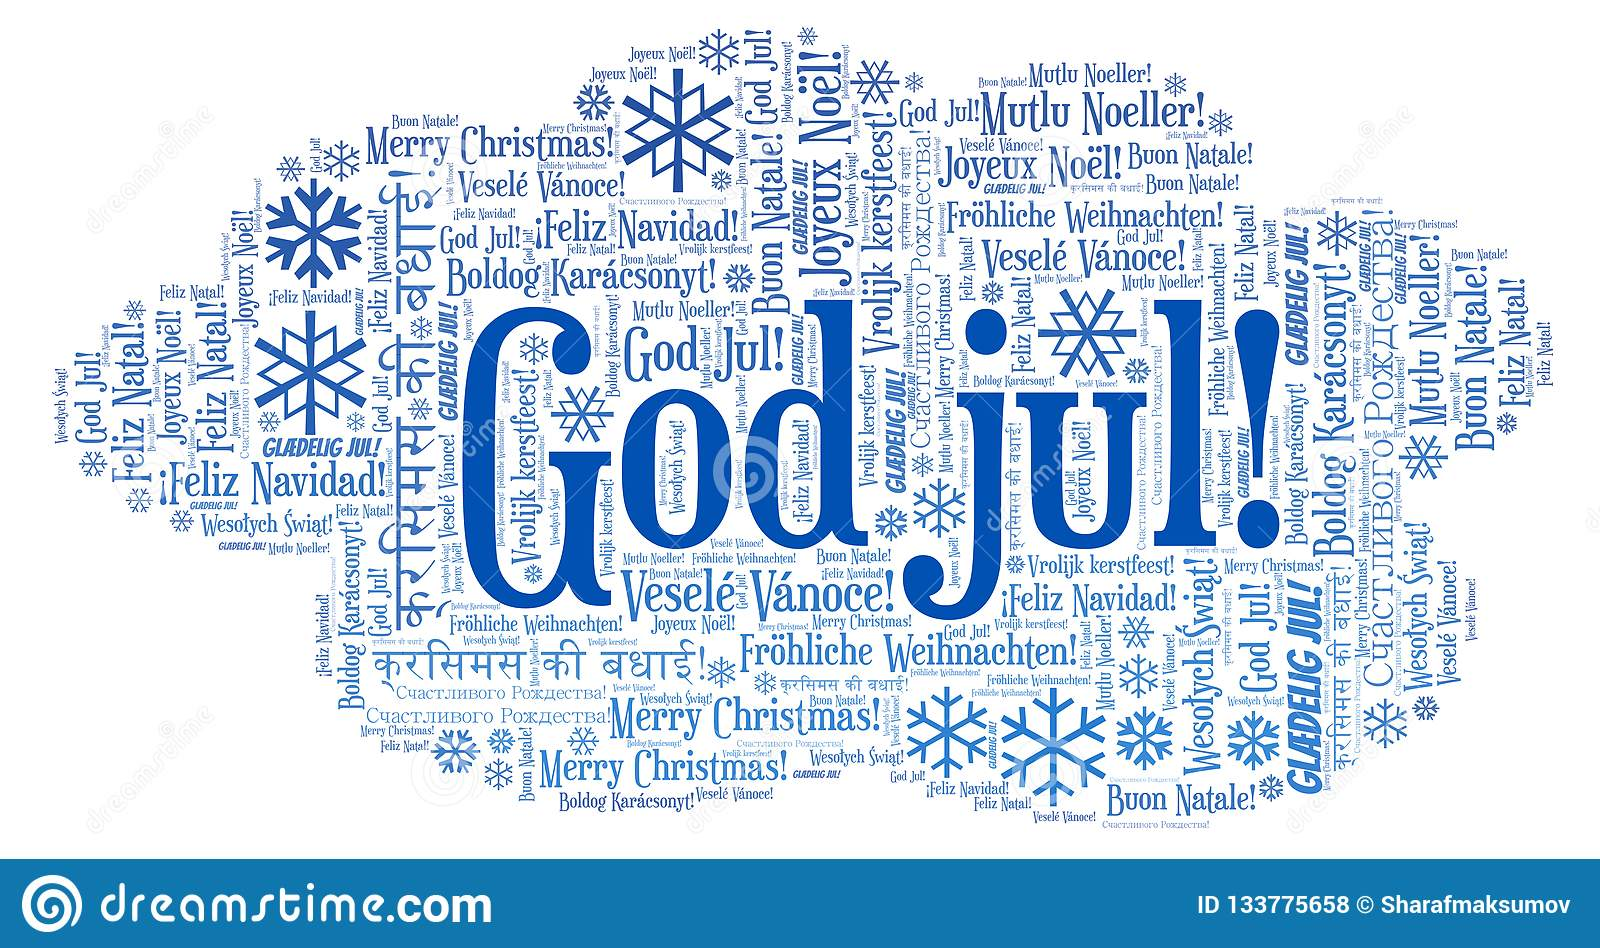 God jul word cloud - Merry Christmas on Norwegian language and other different languages